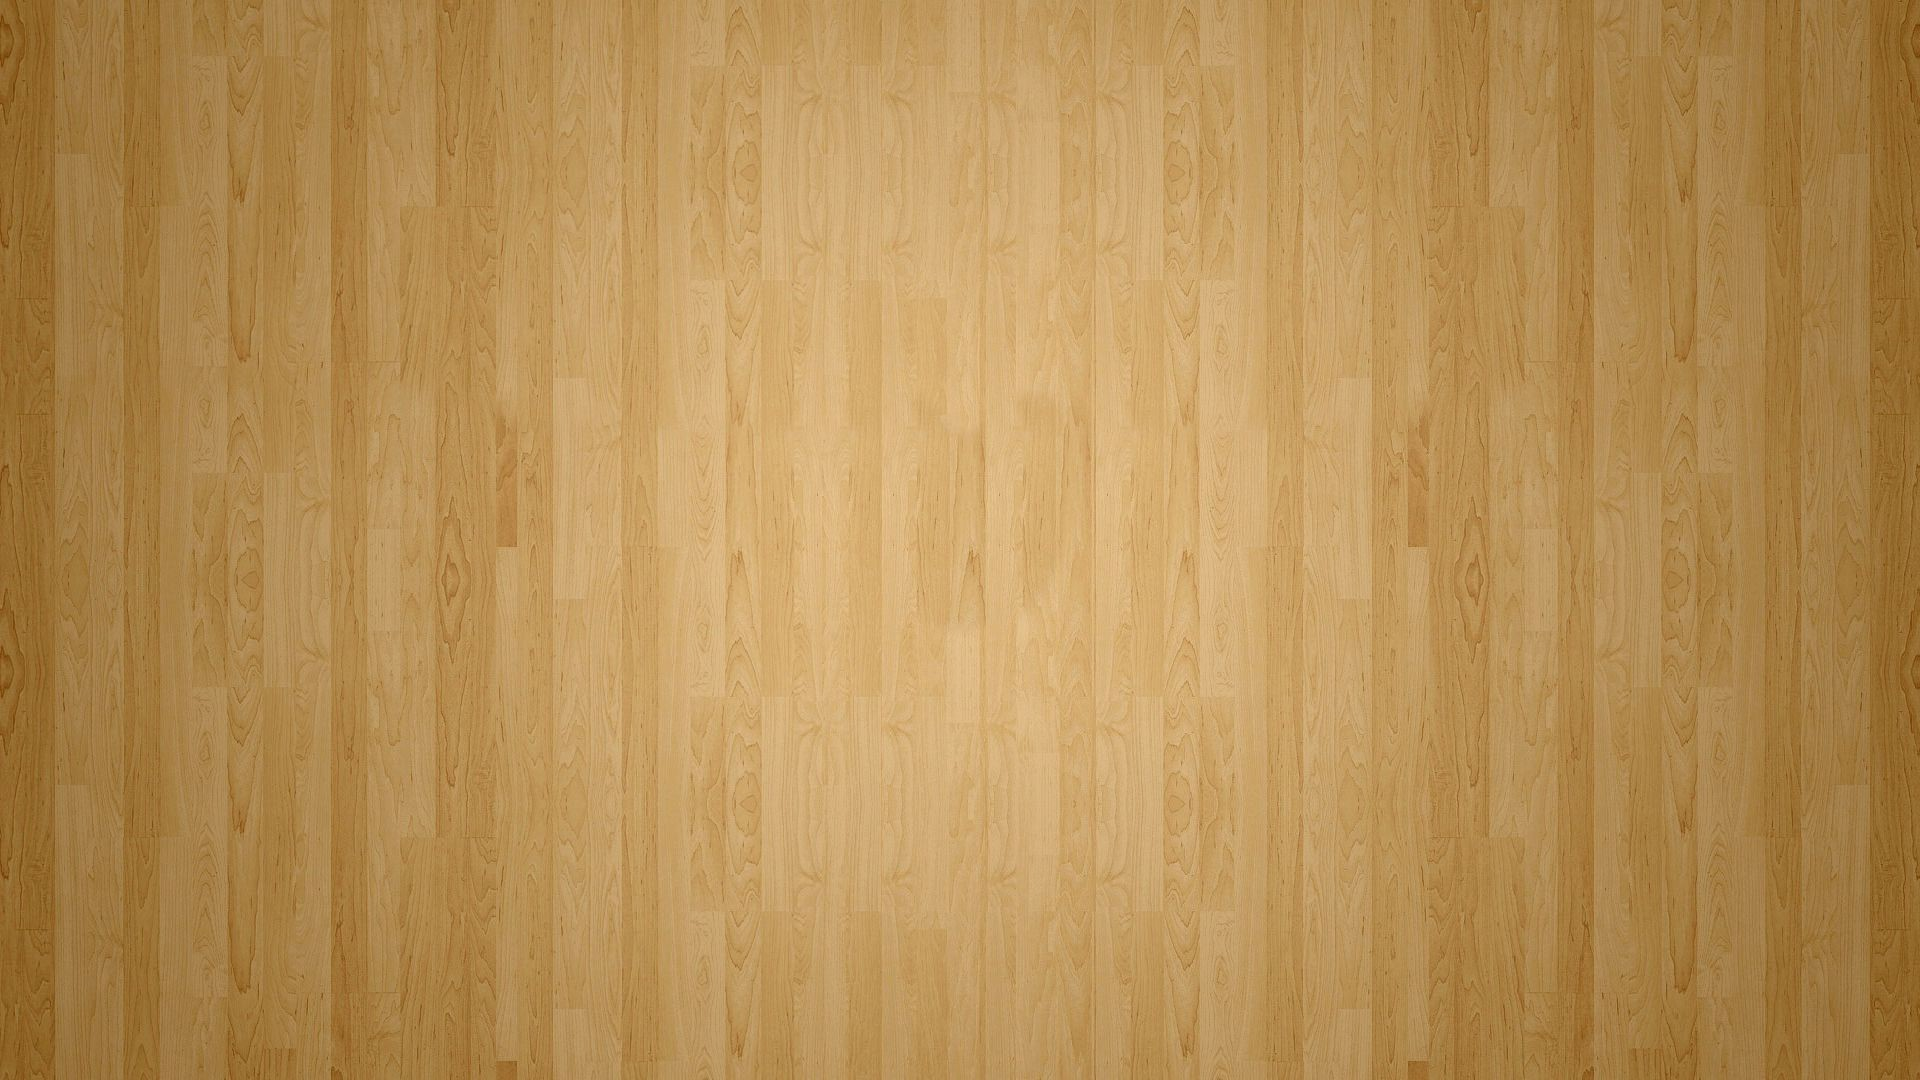 1920x1080 Wood Wallpaper Background 1